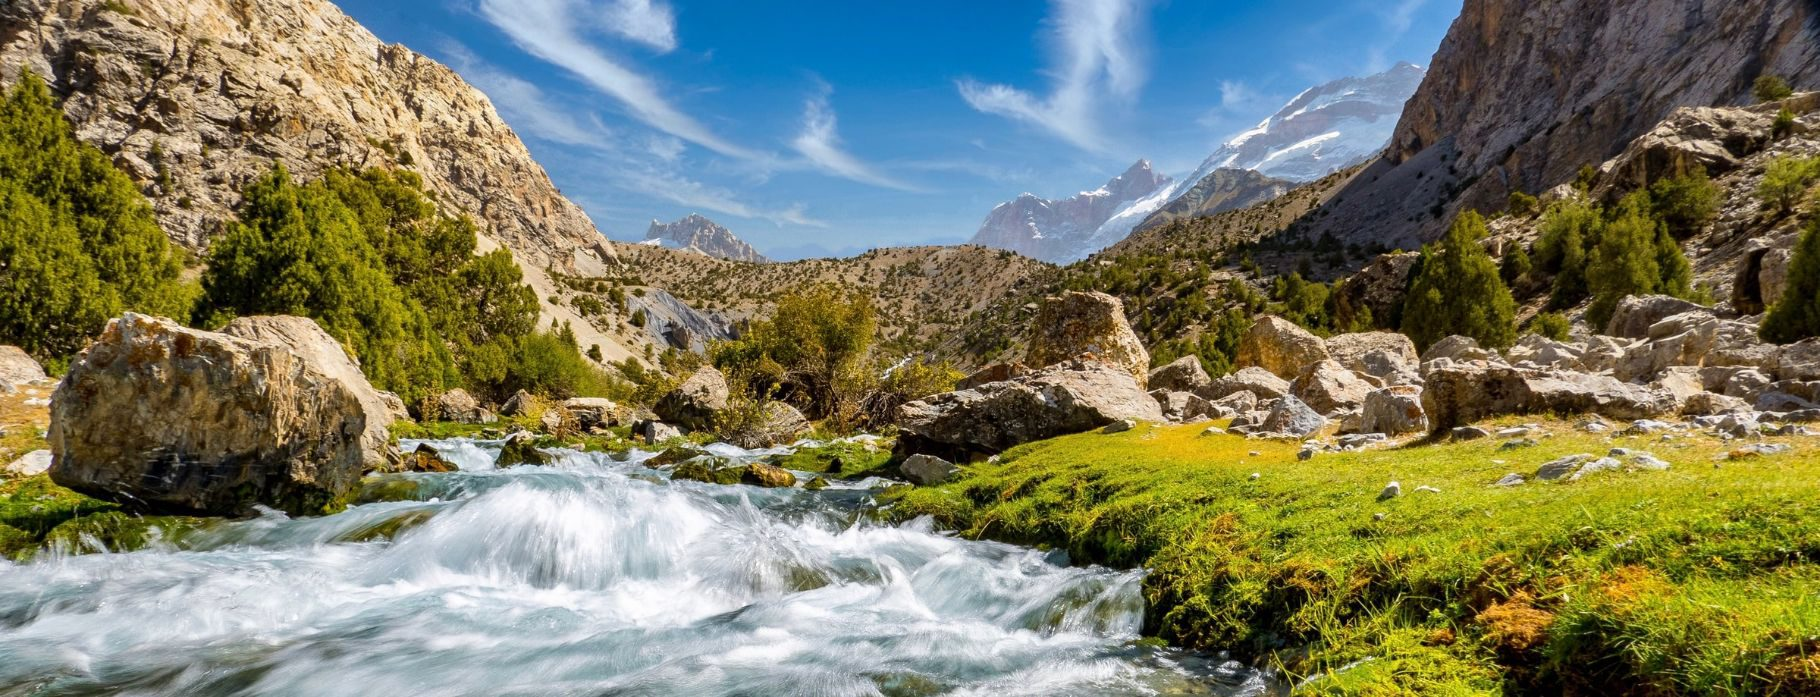 INTRIQ FINESSE - 14 DAYS CENTRAL ASIA: JOURNEY OVER THE HIGH SILK ROAD